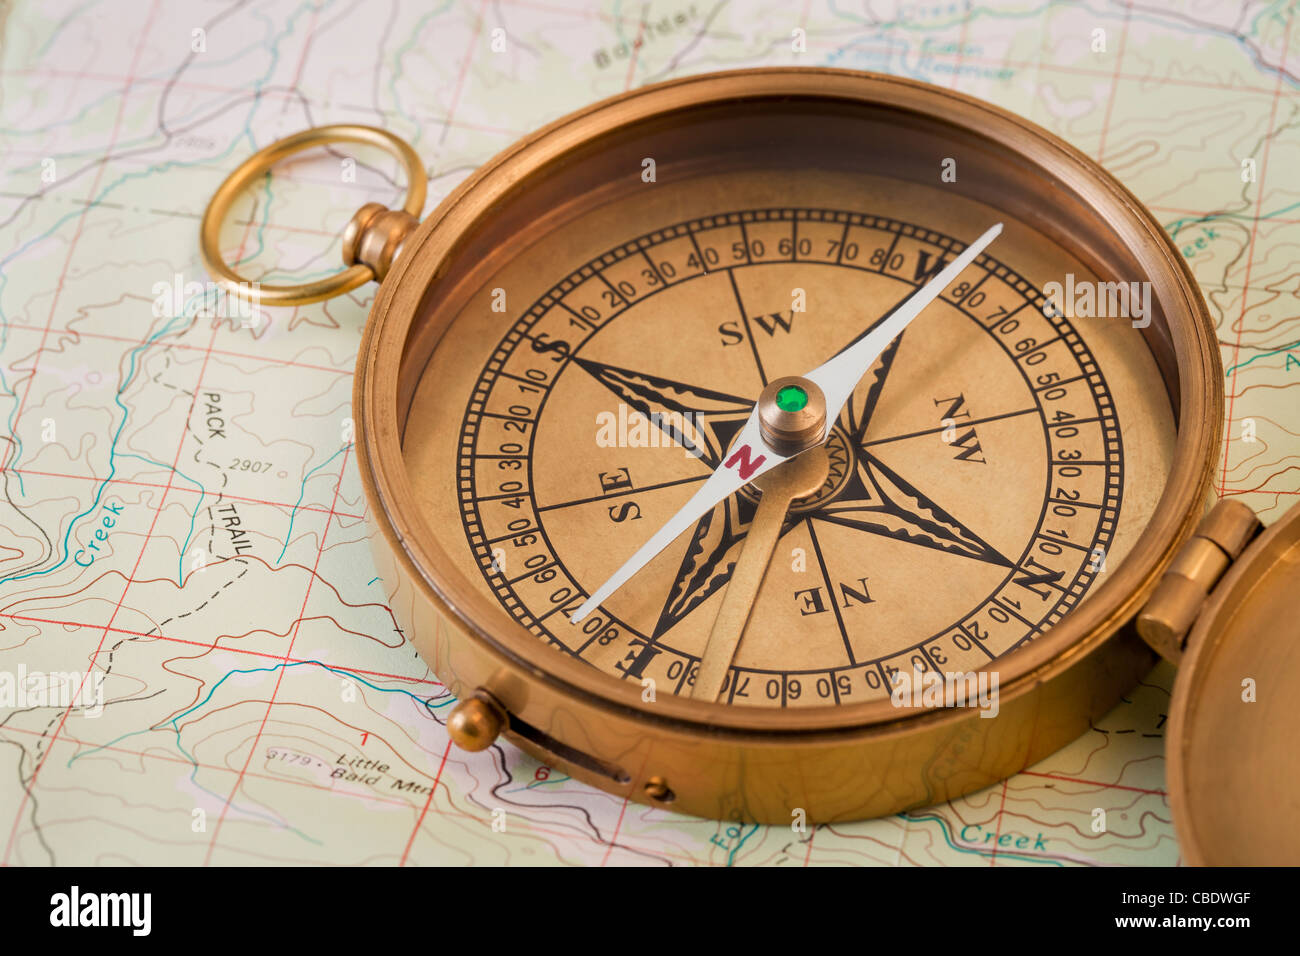 vintage pocket brass compass opened over topographical map - Stock Image